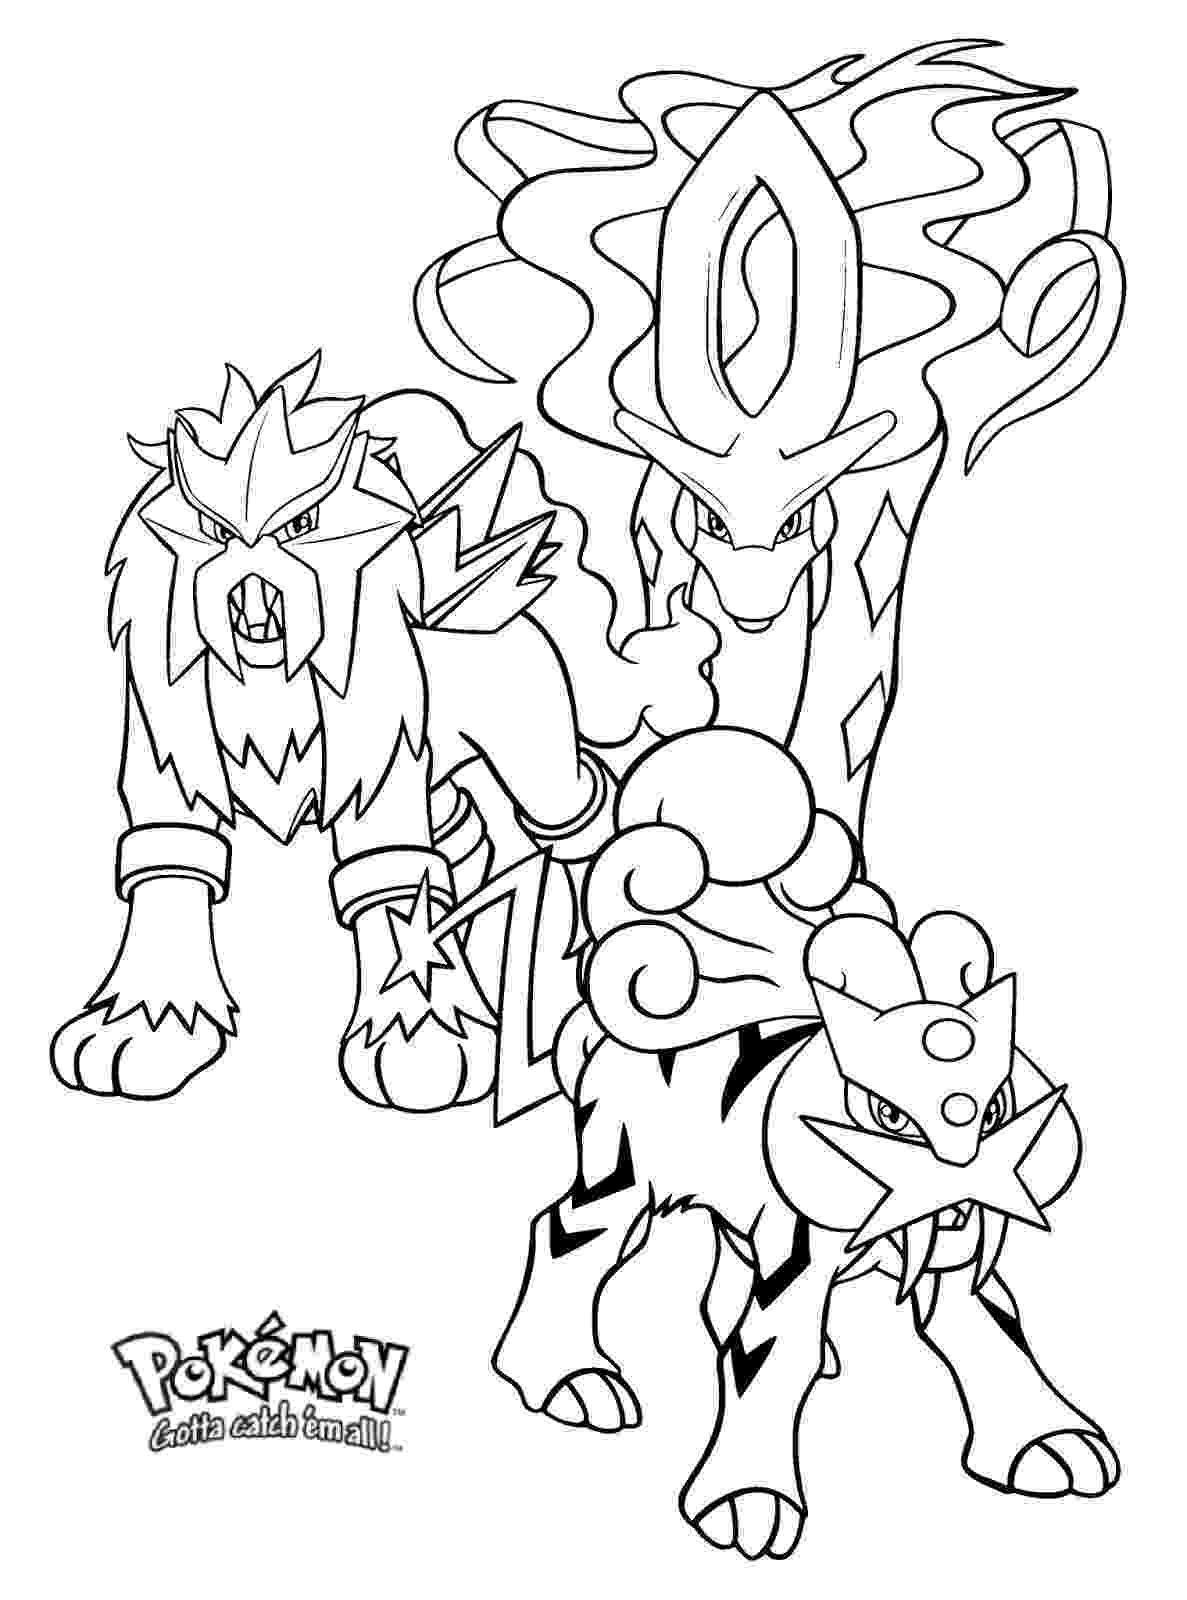 pokemon coloring pages legendary mew free legendary pokemon coloring pages for kids pages legendary mew coloring pokemon